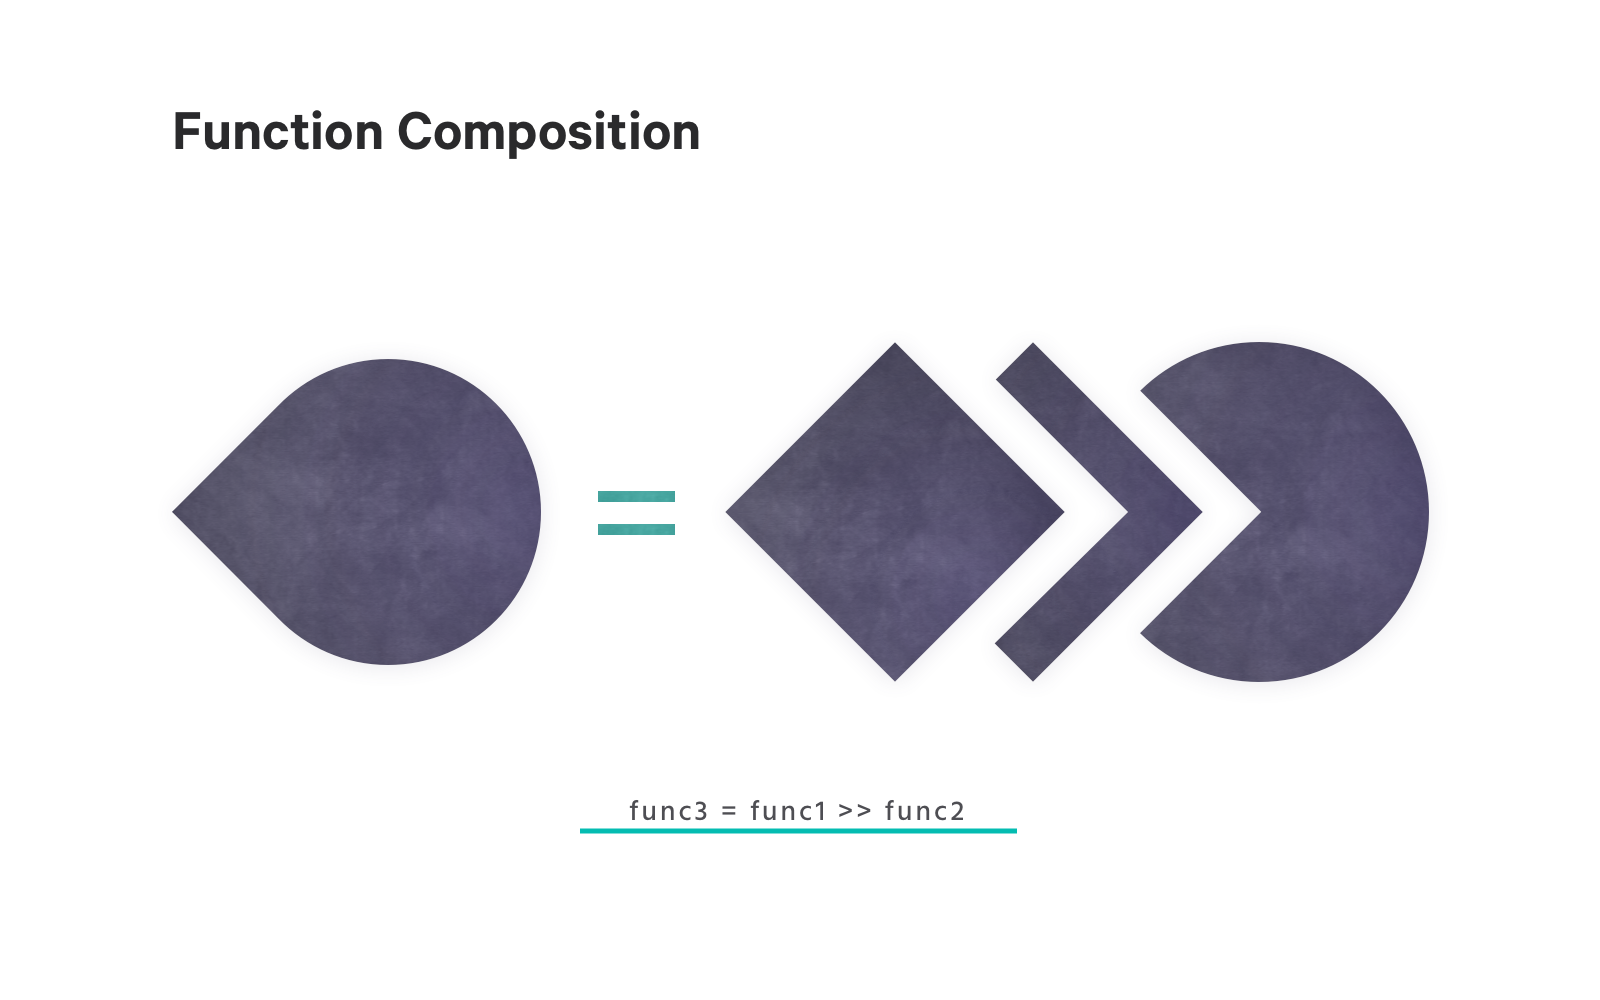 graphic illustrating function composition